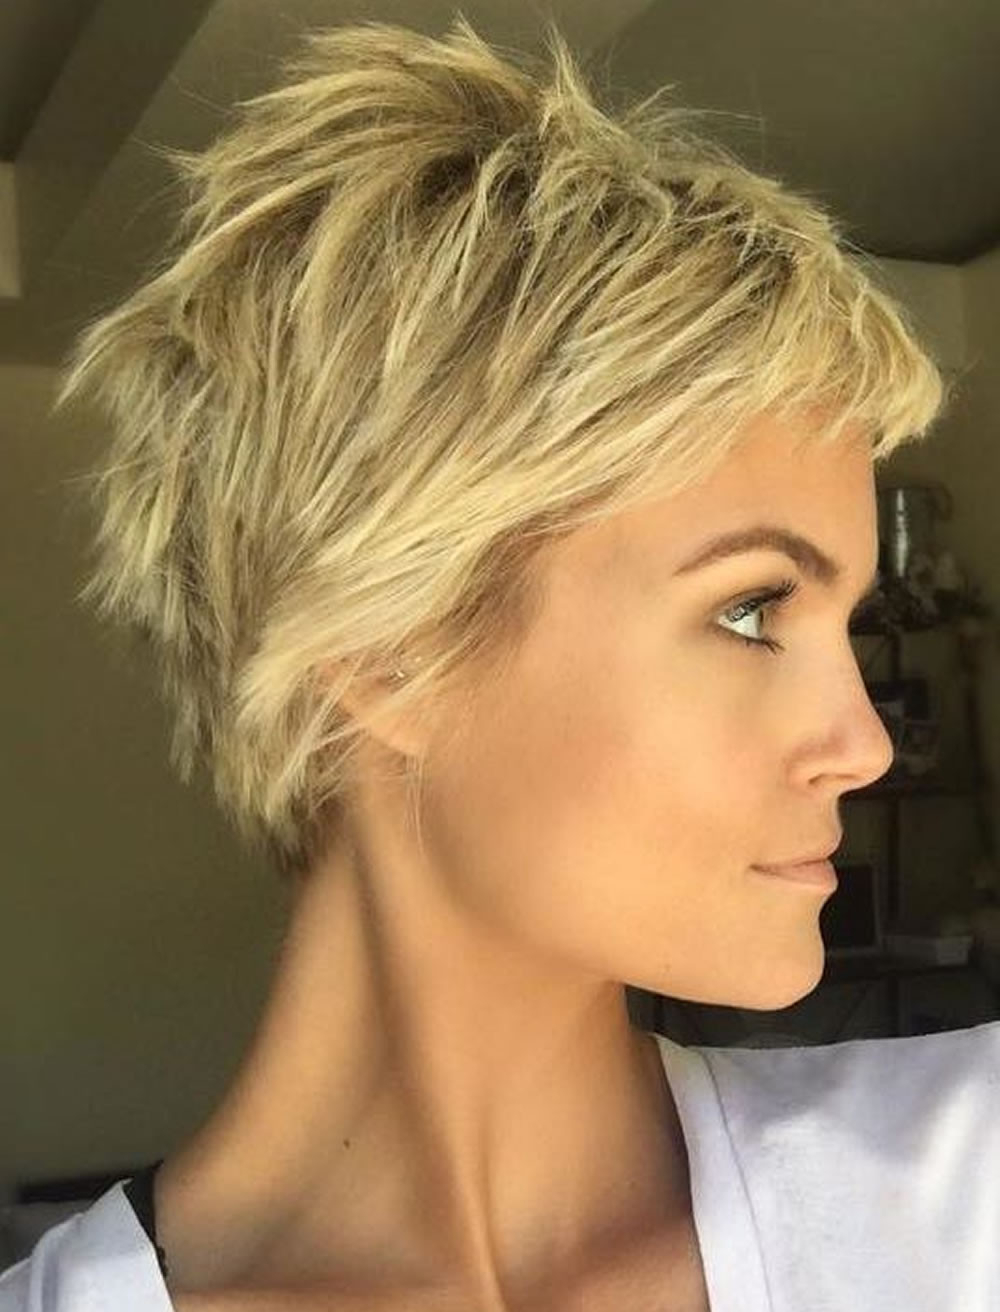 19 Great Womens Hair Styles Short Images For Asymmetric Short Haircuts (View 18 of 25)